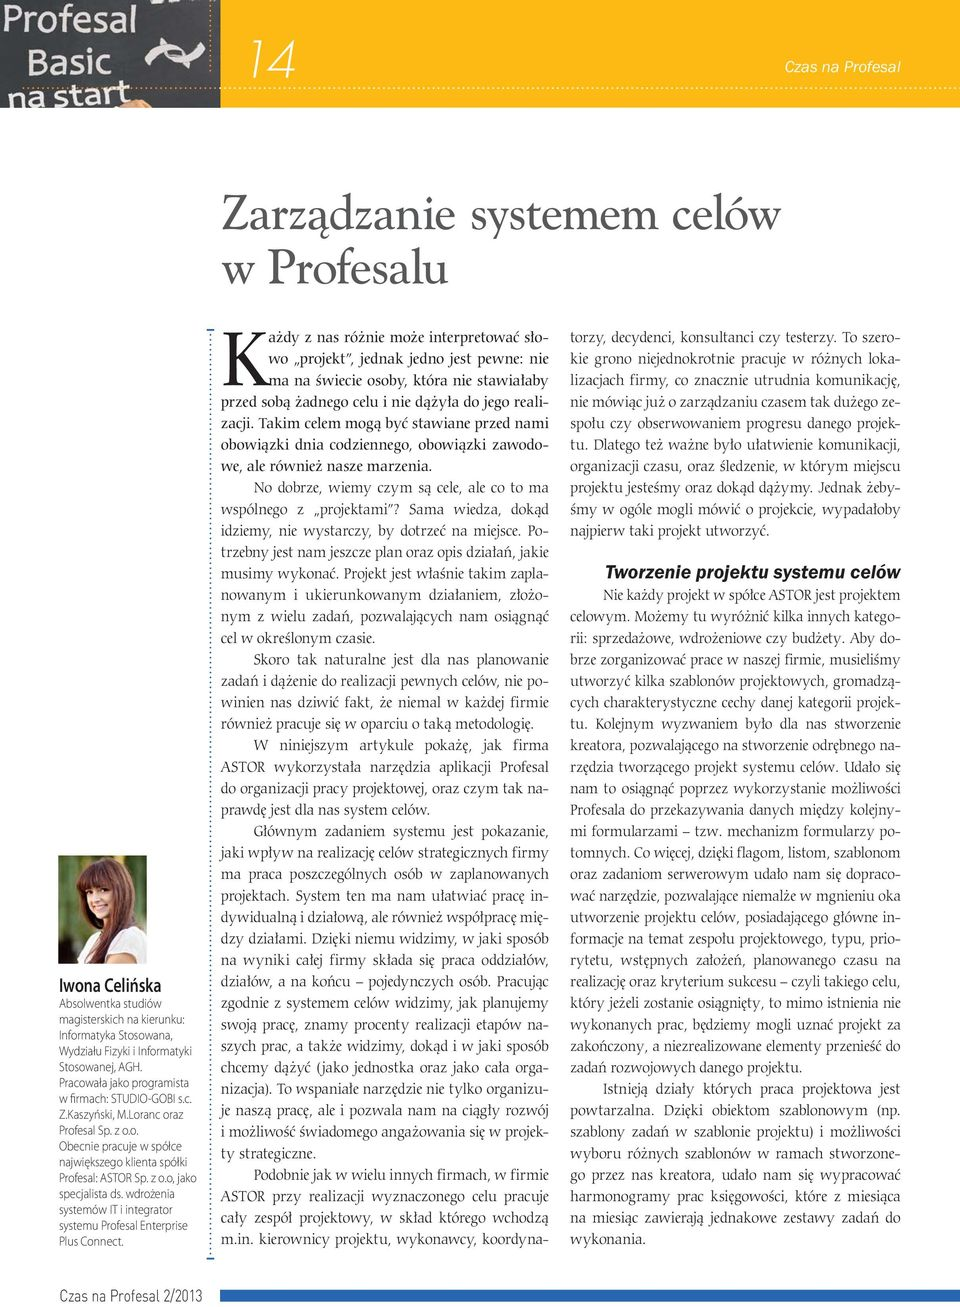 wdrożenia systemów IT i integrator systemu Profesal Enterprise Plus Connect.